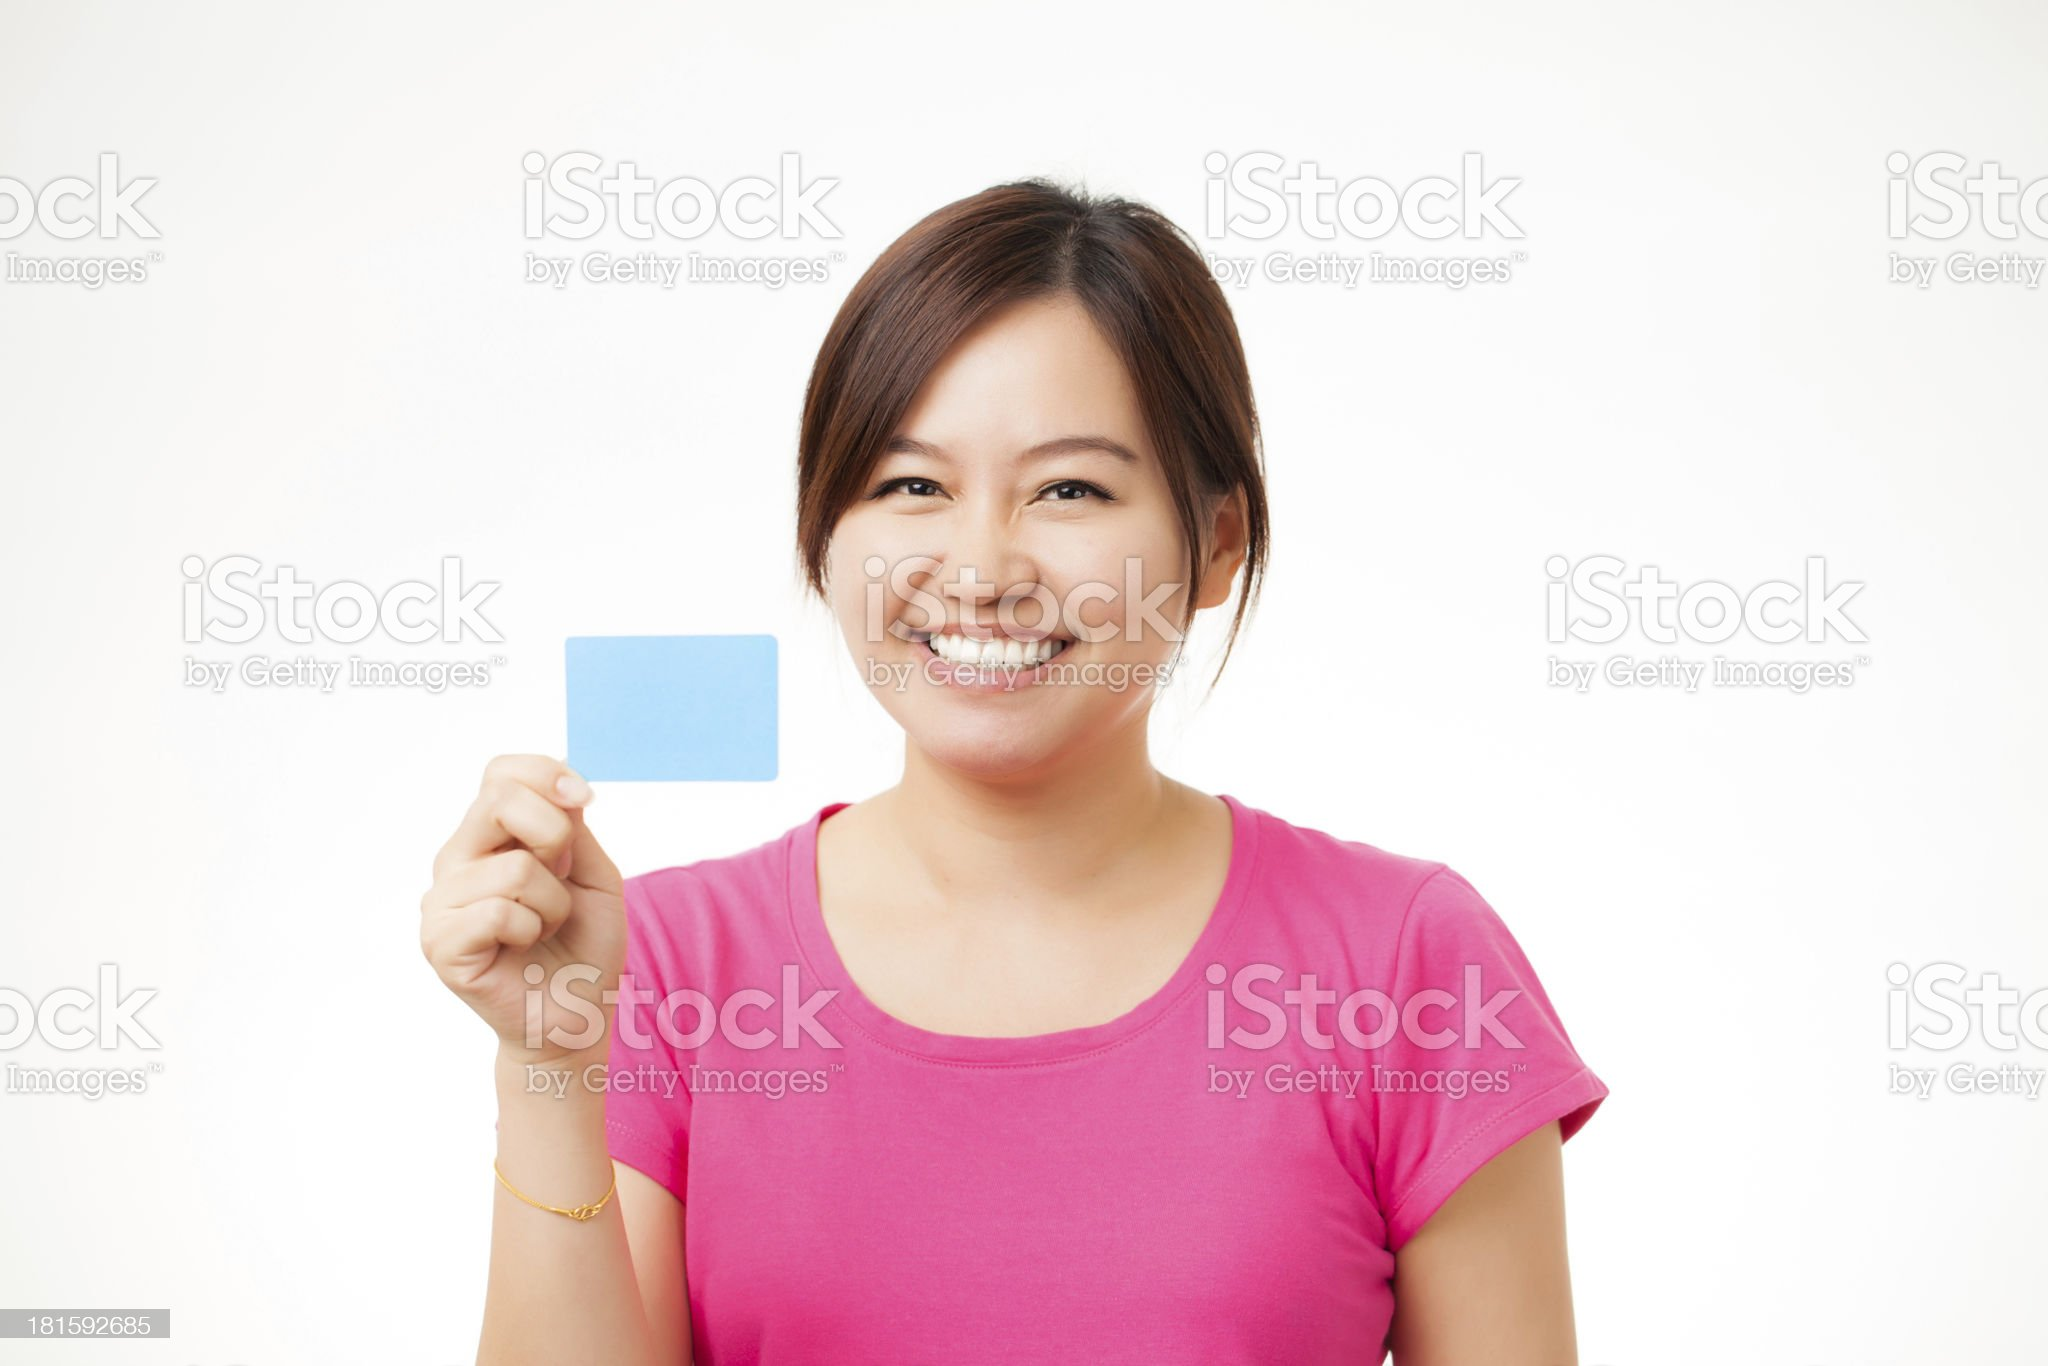 business cards and blank signs royalty-free stock photo